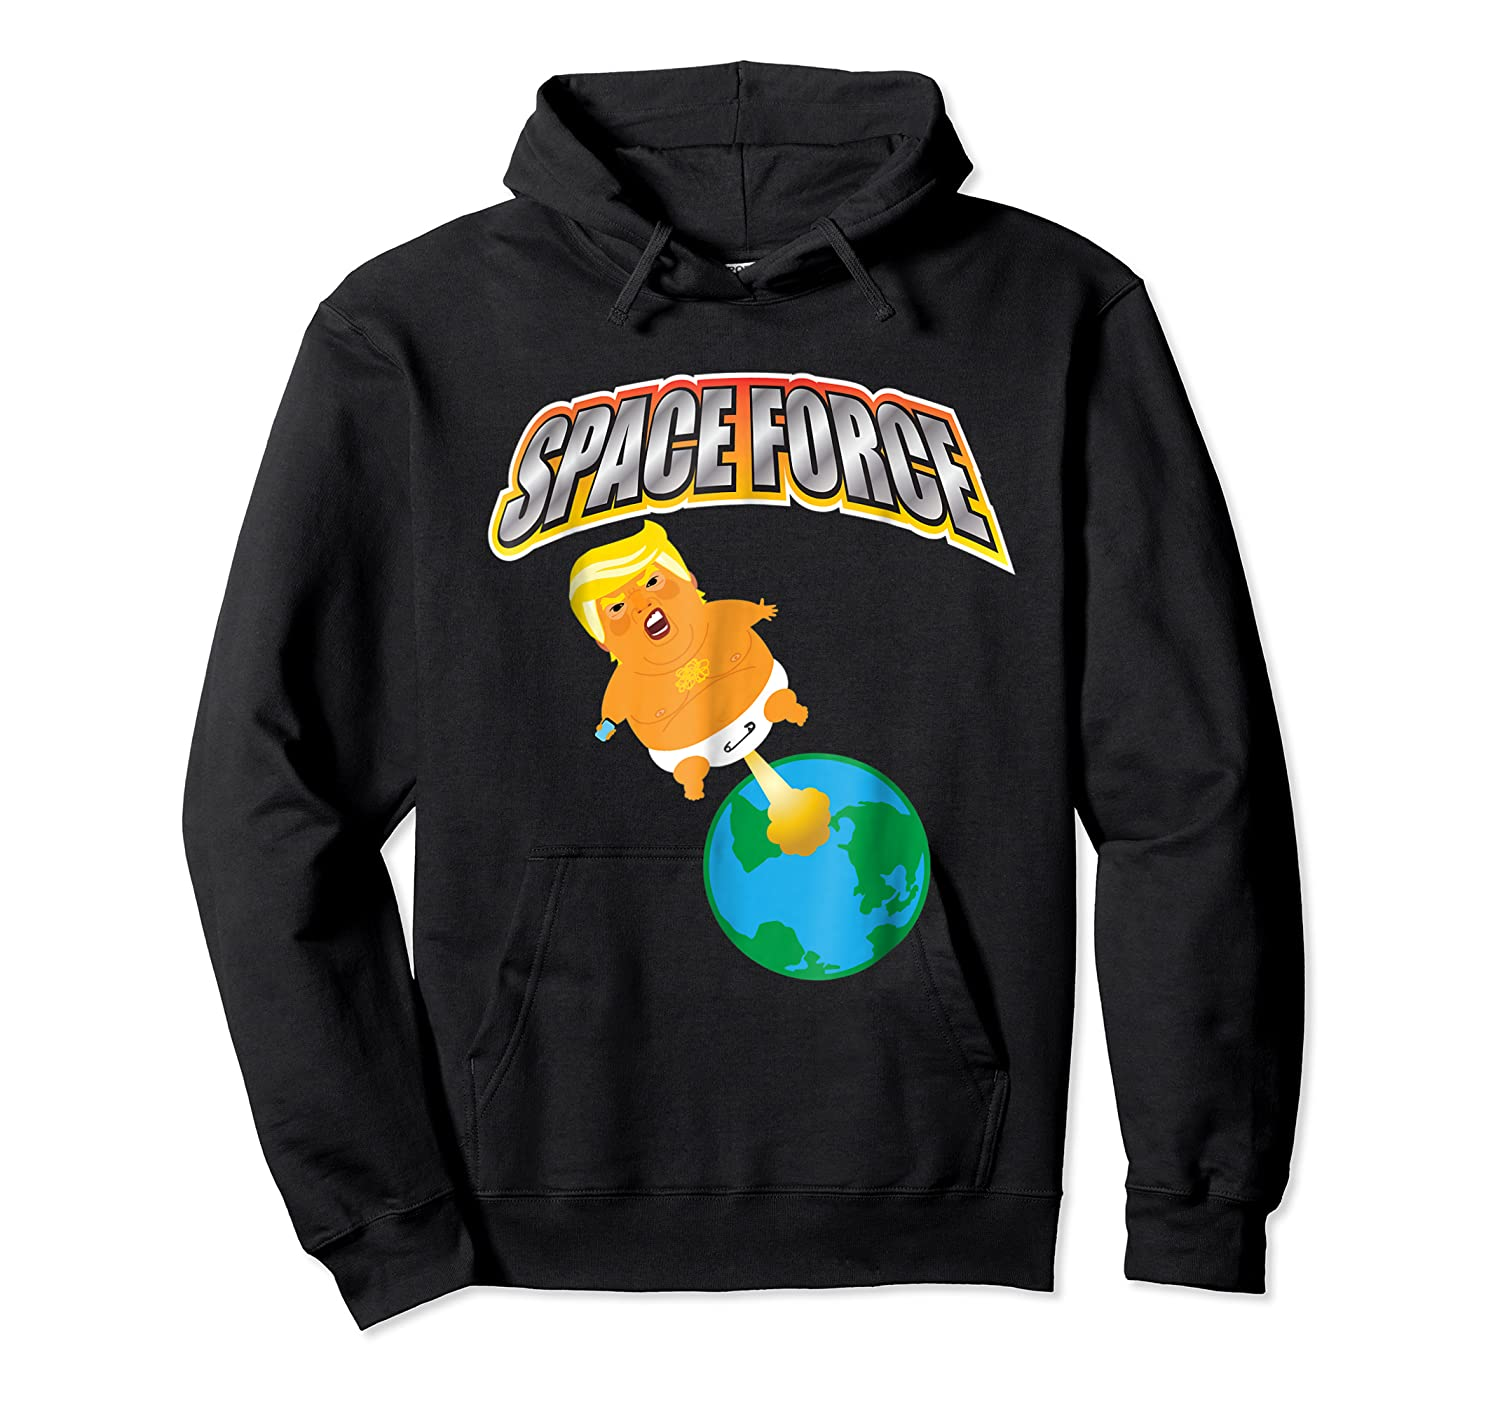 Anti Space Force Funny Donald Trump Gift Shirts Unisex Pullover Hoodie